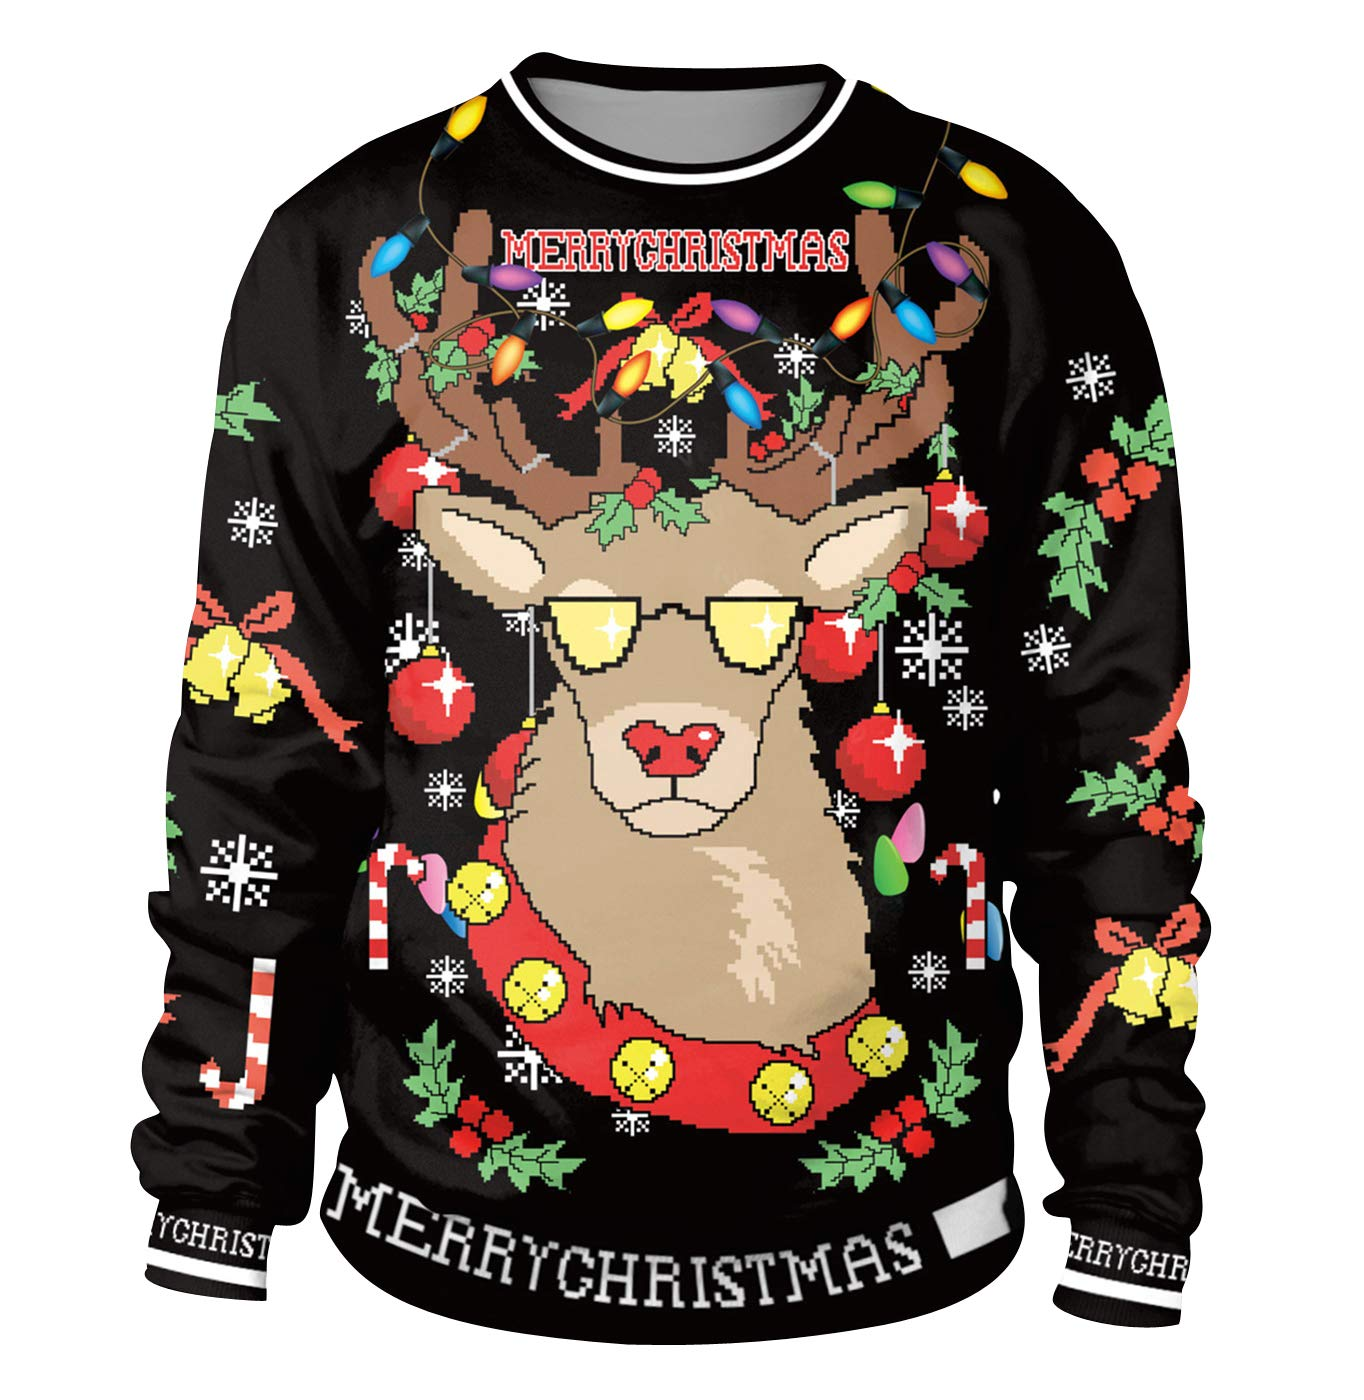 e17610cee Christmas Jumpers Womens Mens Funny Xmas Jumpers Sweatshirts Novelty ...